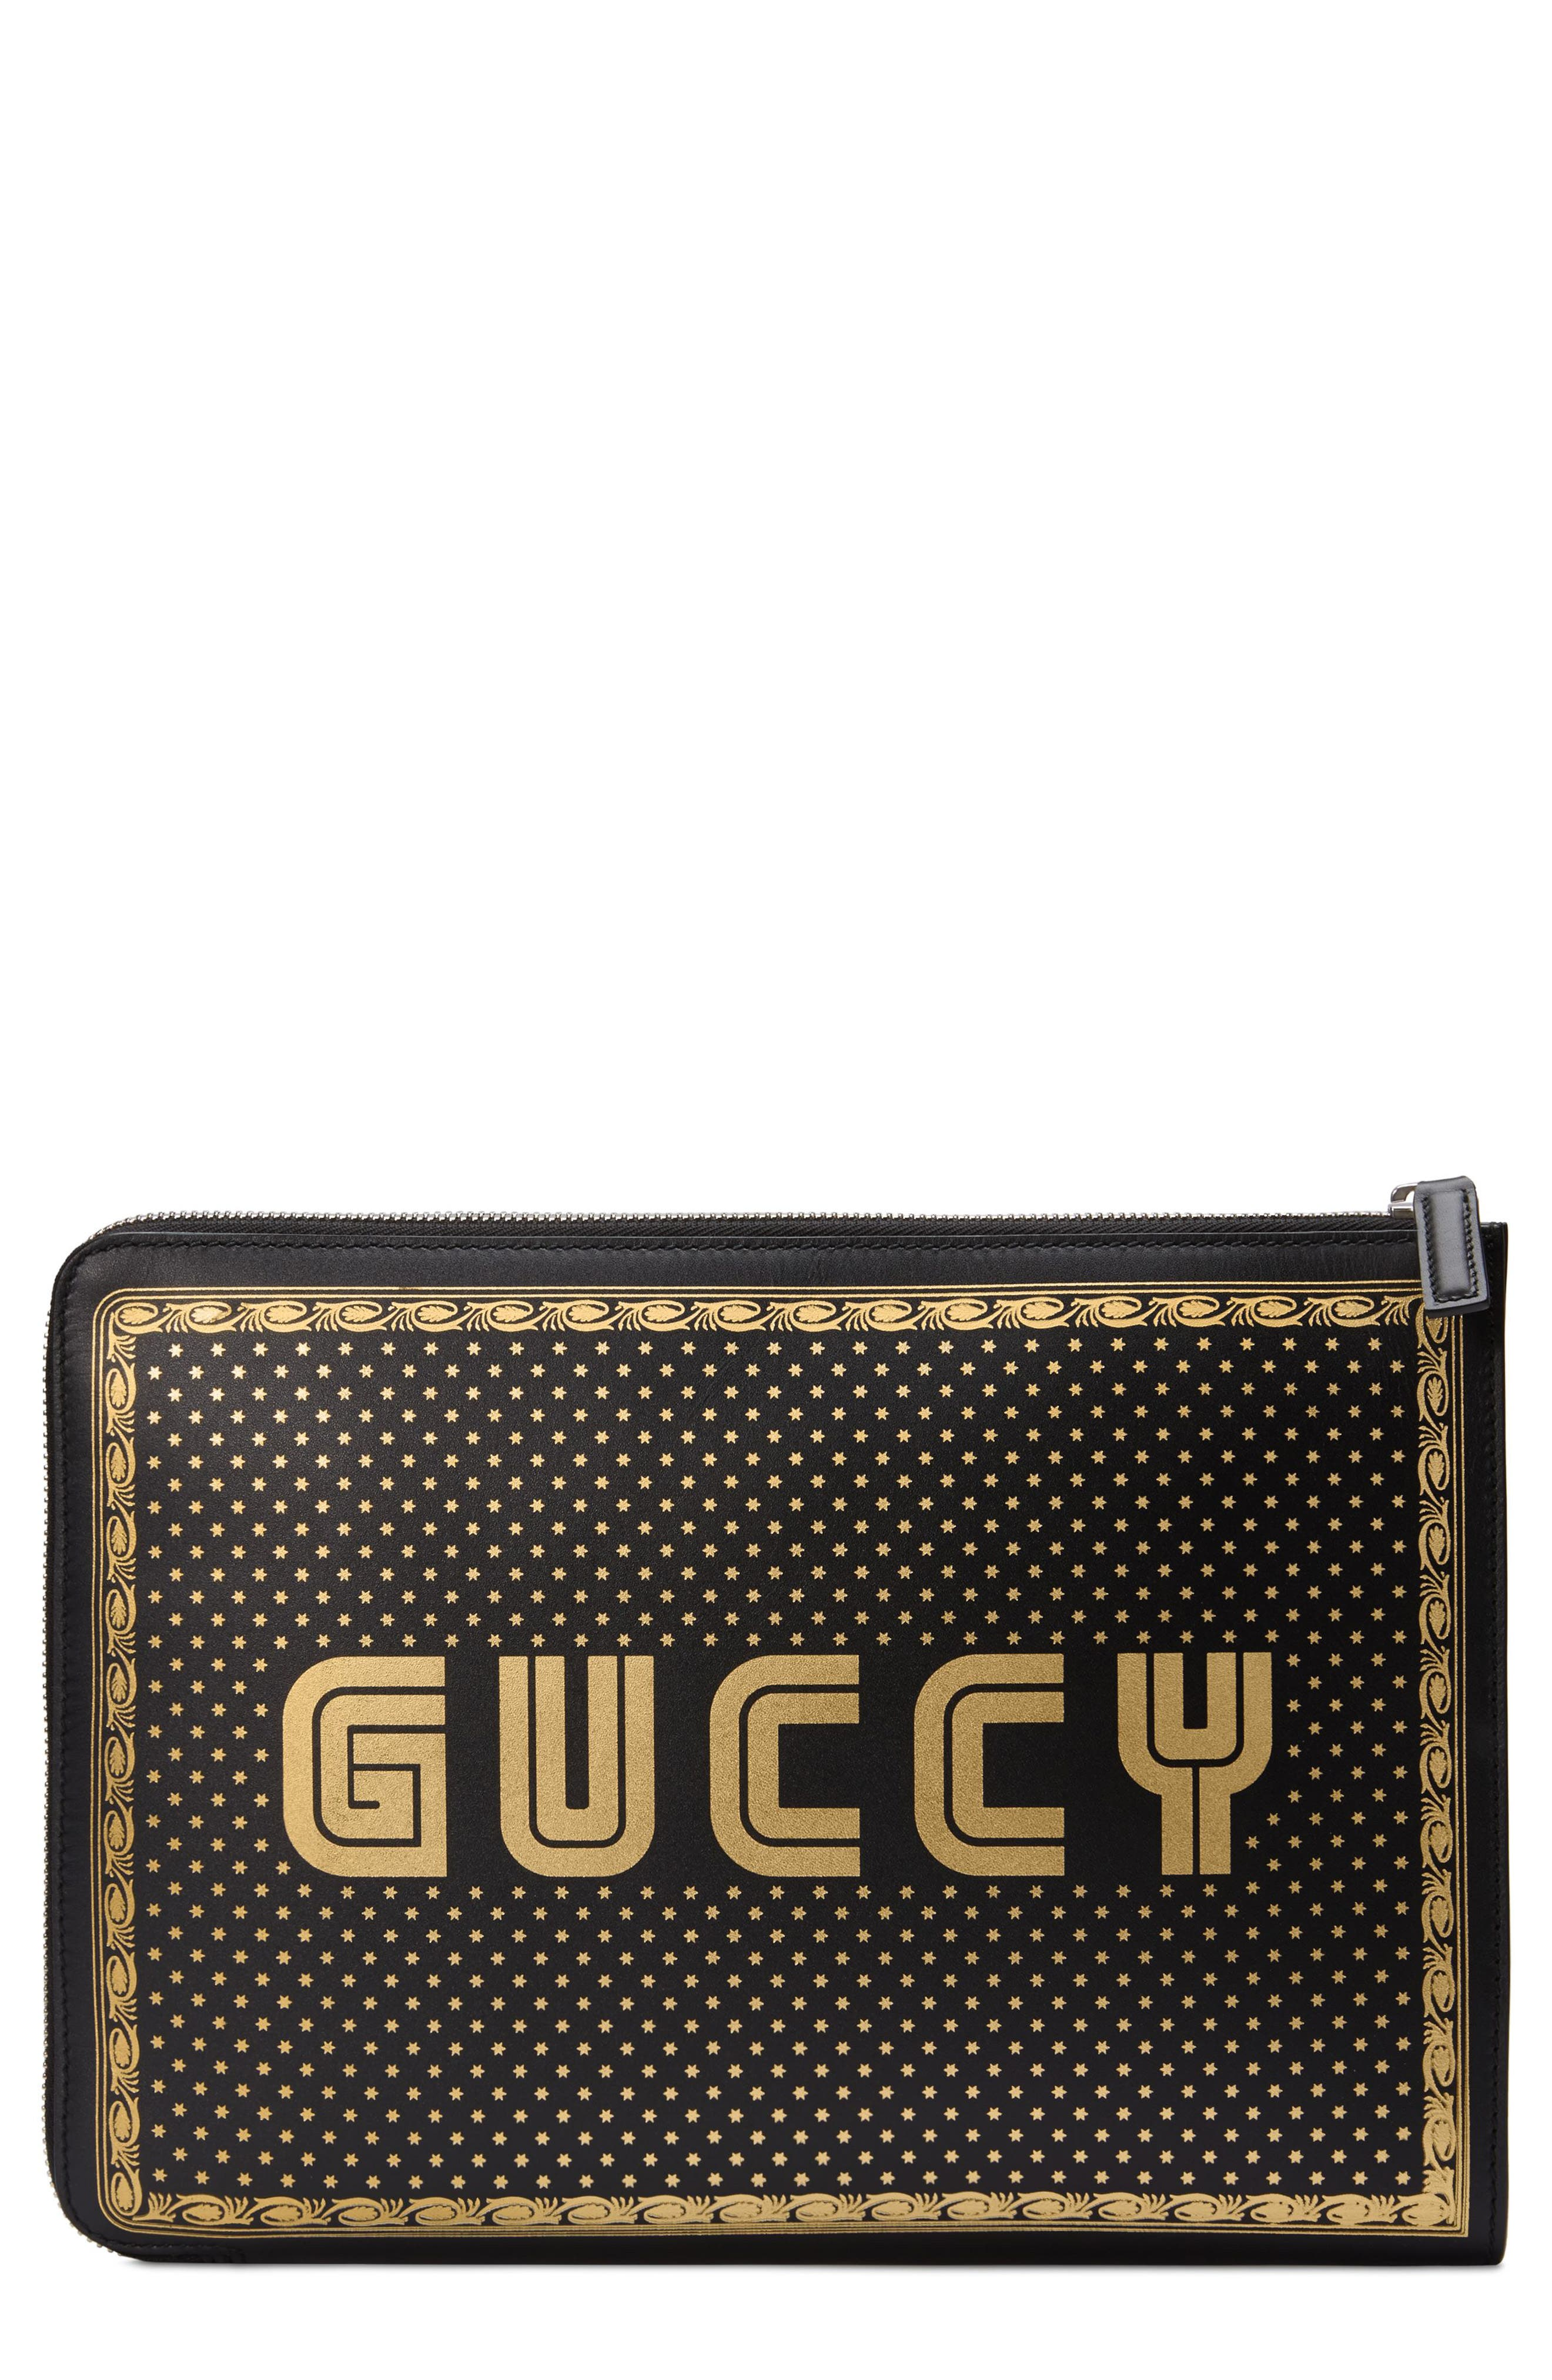 GUCCY LOGO MOON & STARS LEATHER CLUTCH - BLACK